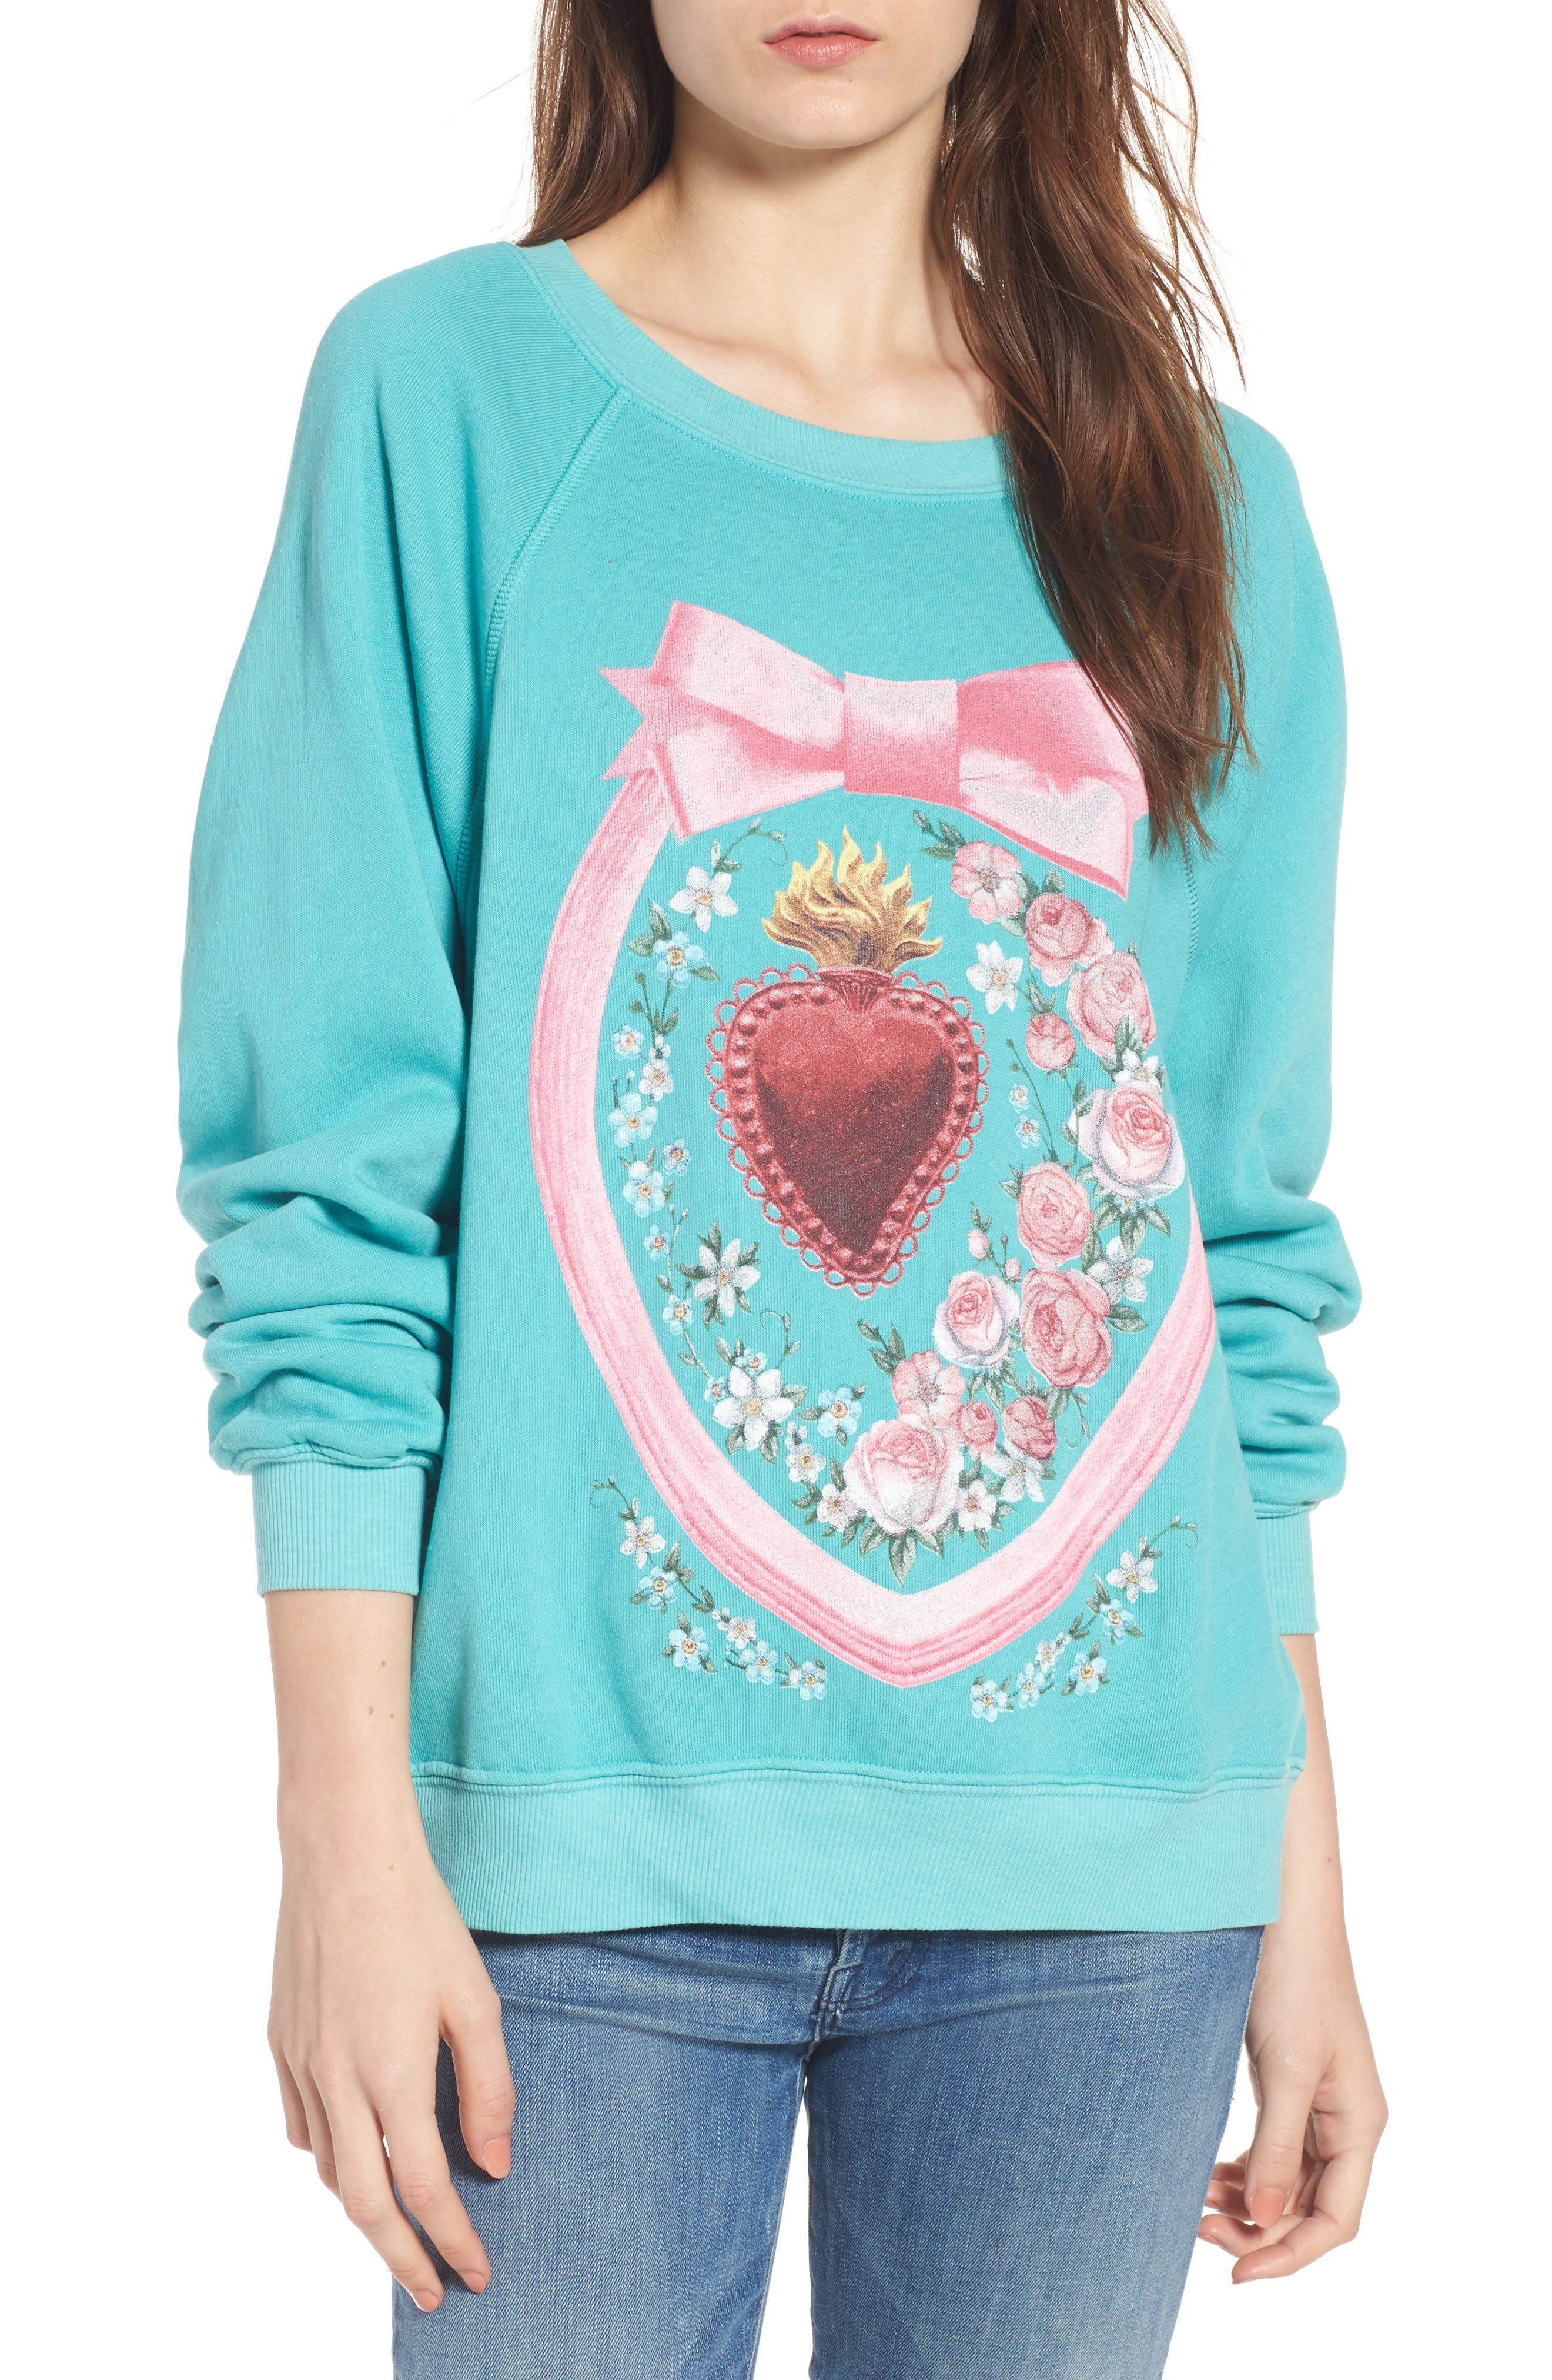 Heirlooms Sommers Sweatshirt,                             Main thumbnail 1, color,                             Trance Teal